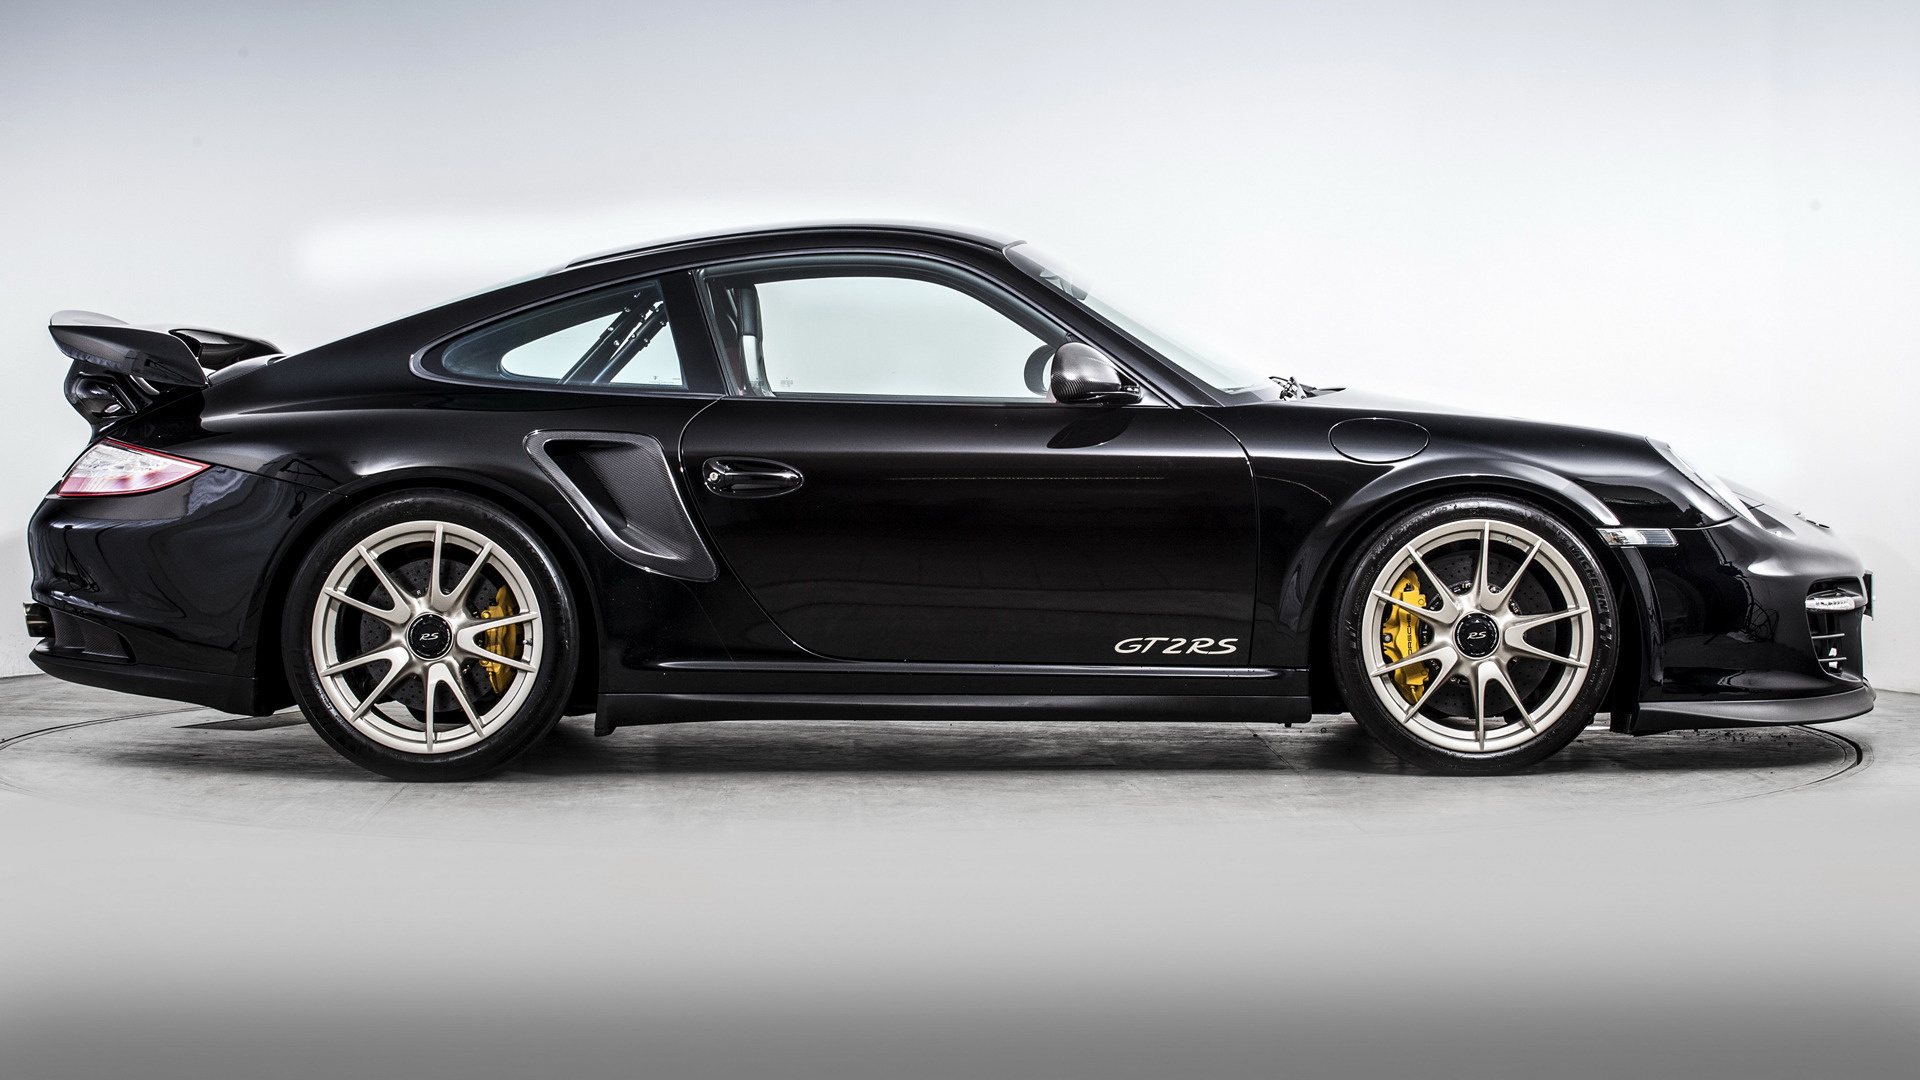 porsche 911 gt2 rs 2010 uk wallpapers and hd images. Black Bedroom Furniture Sets. Home Design Ideas